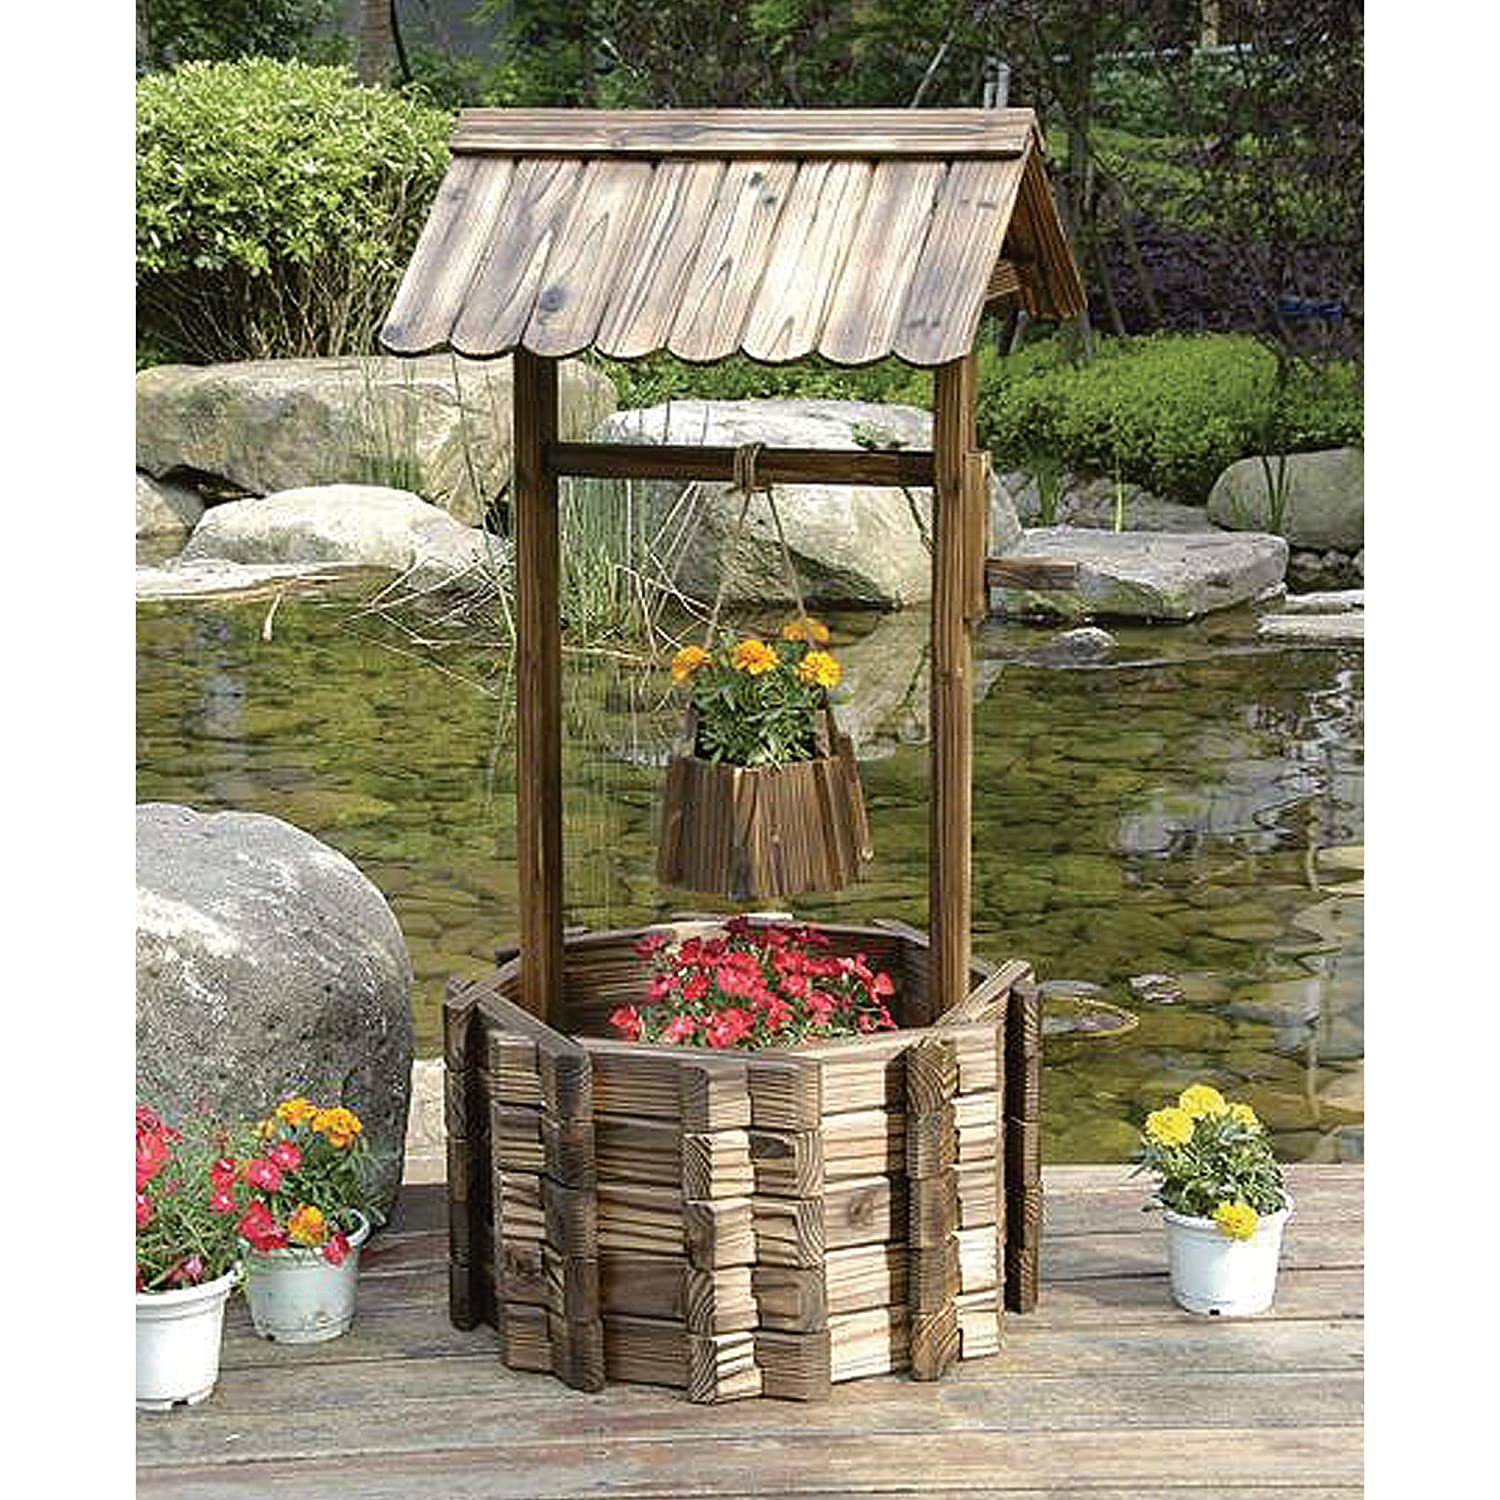 Garden designs with bridges and wishing wells landscaping ideas - Amazon Com Grand Wishing Well Planter Inspires Grand Scale Wishing Patio Lawn Garden